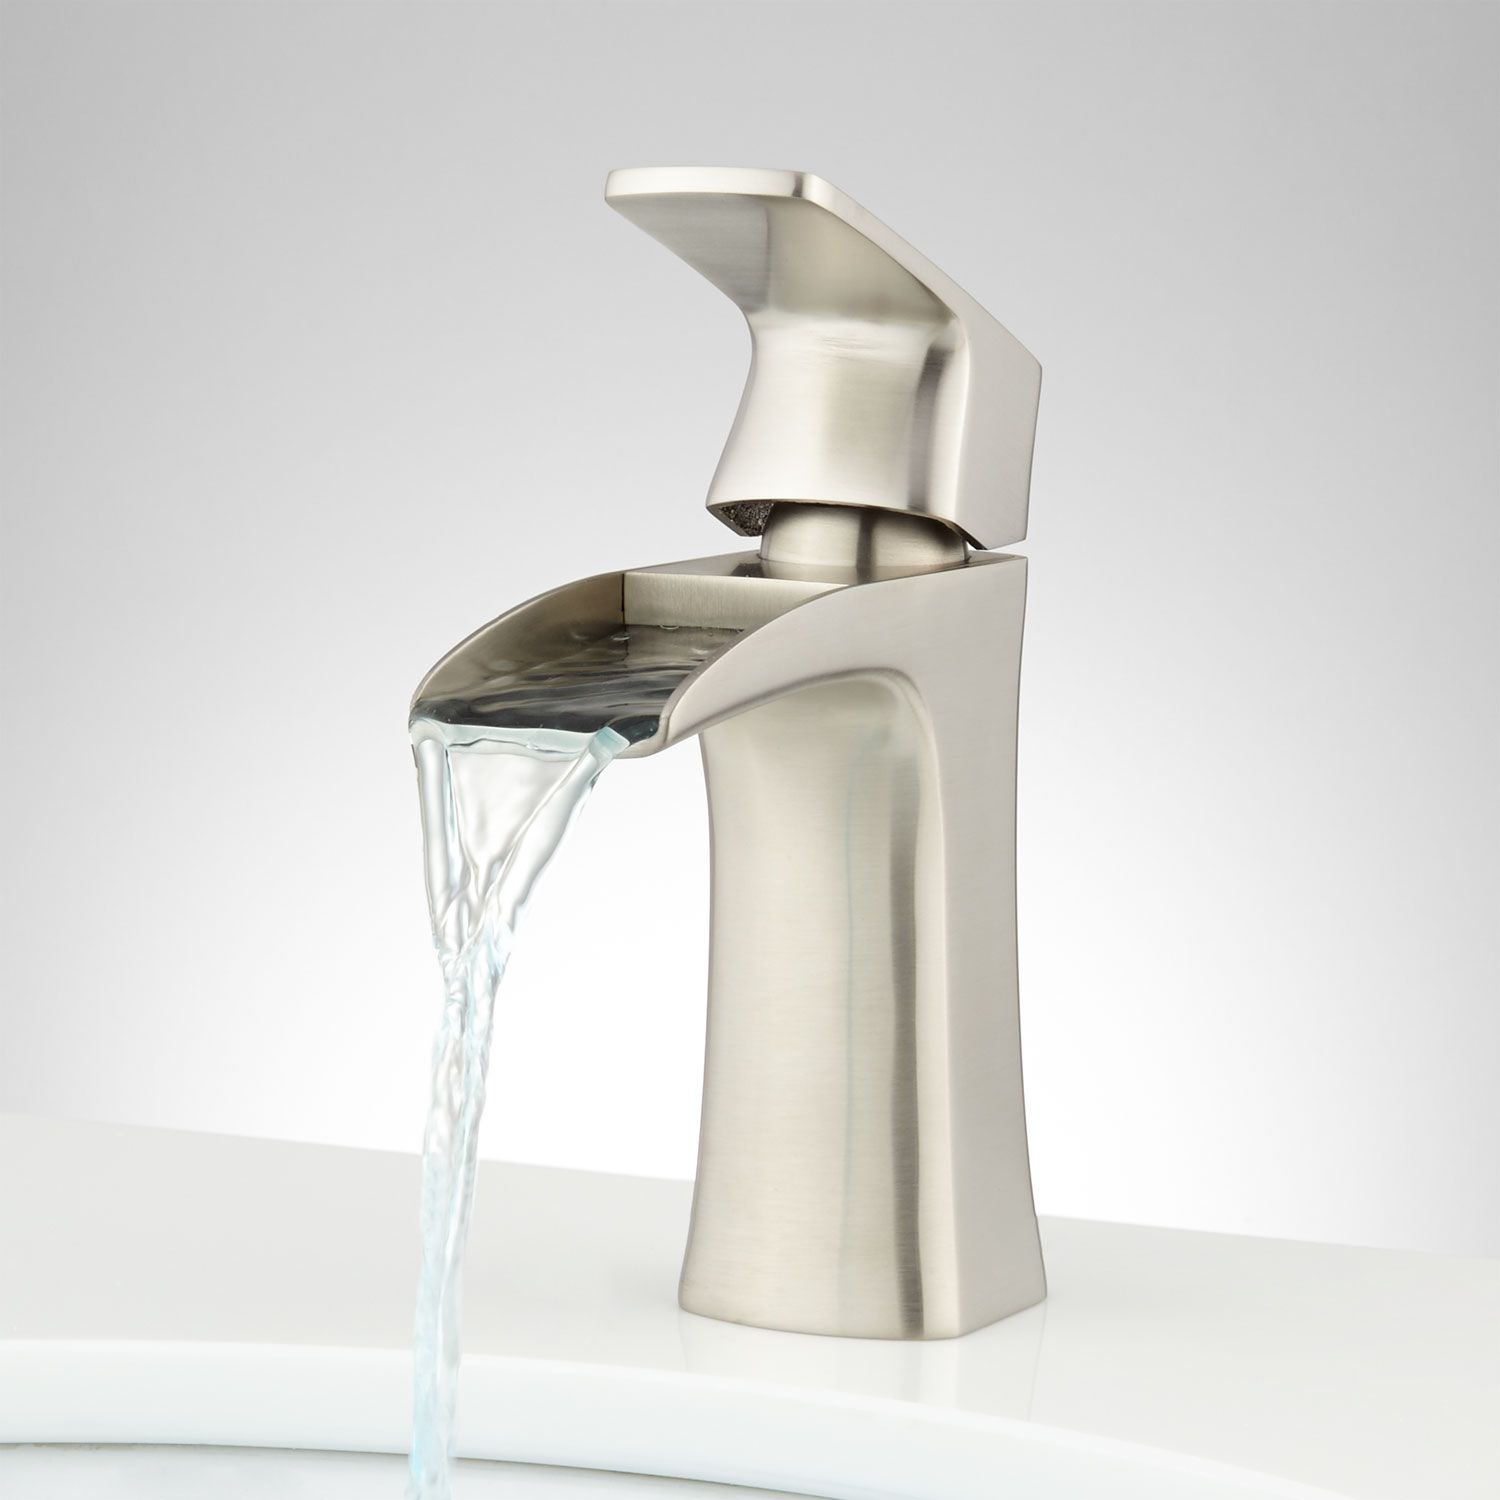 Quintero Single Hole Waterfall Faucet